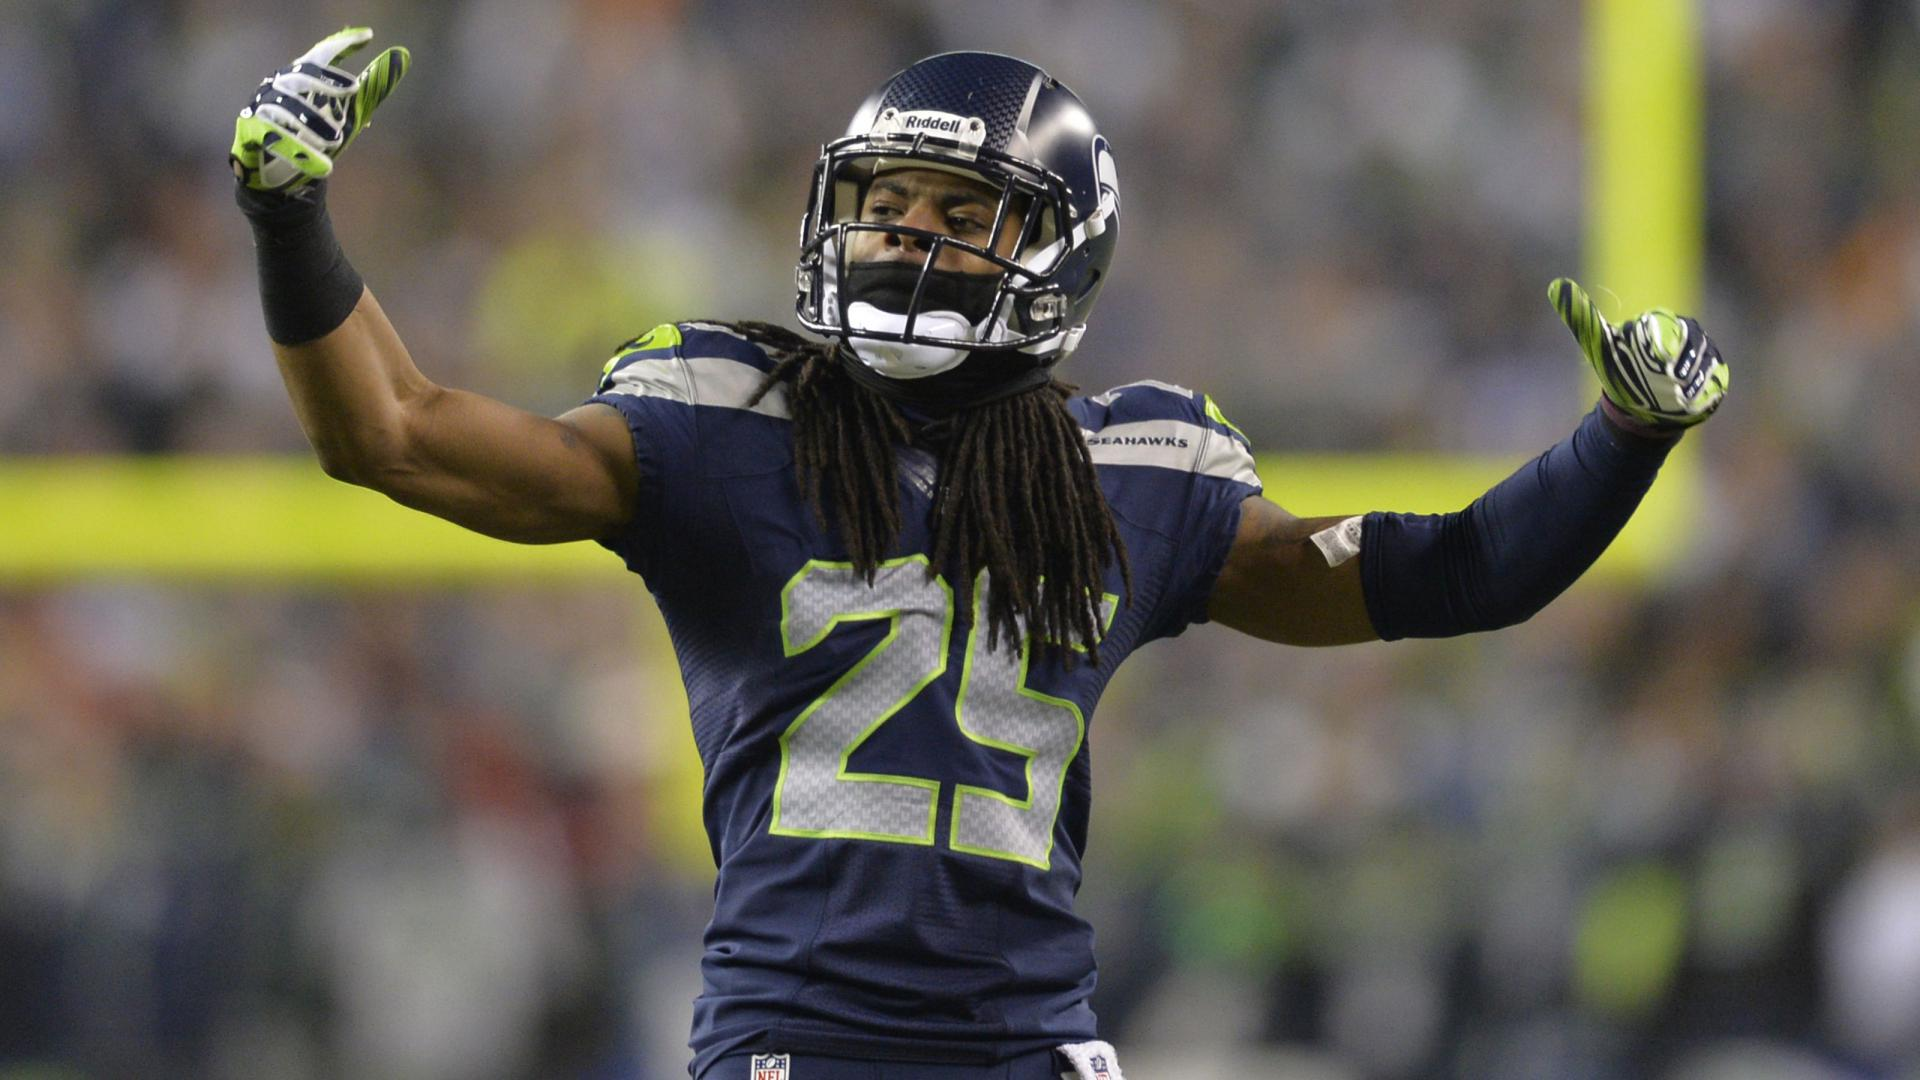 NFL Richard Sherman Richard Sherman Seattle Seahawks Seattle Seahawks 1920x1080